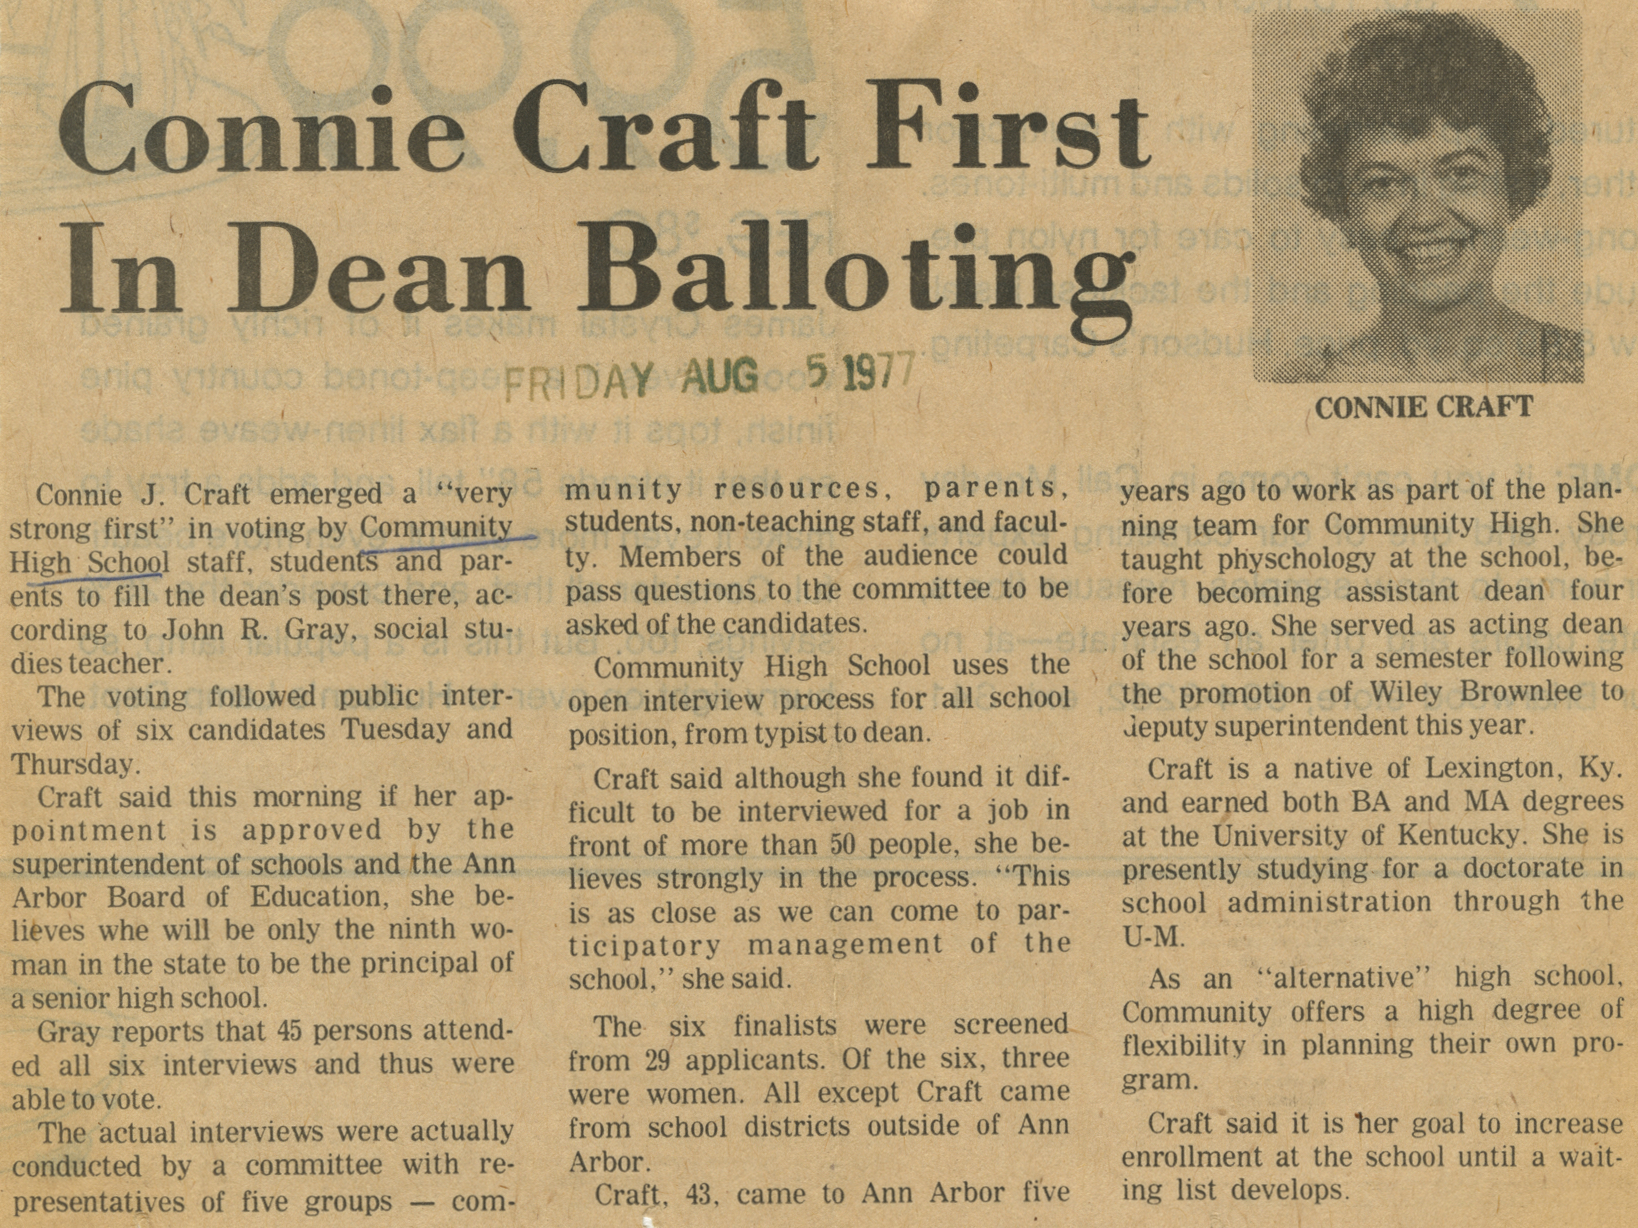 Connie Craft First In Dean Ballotting image